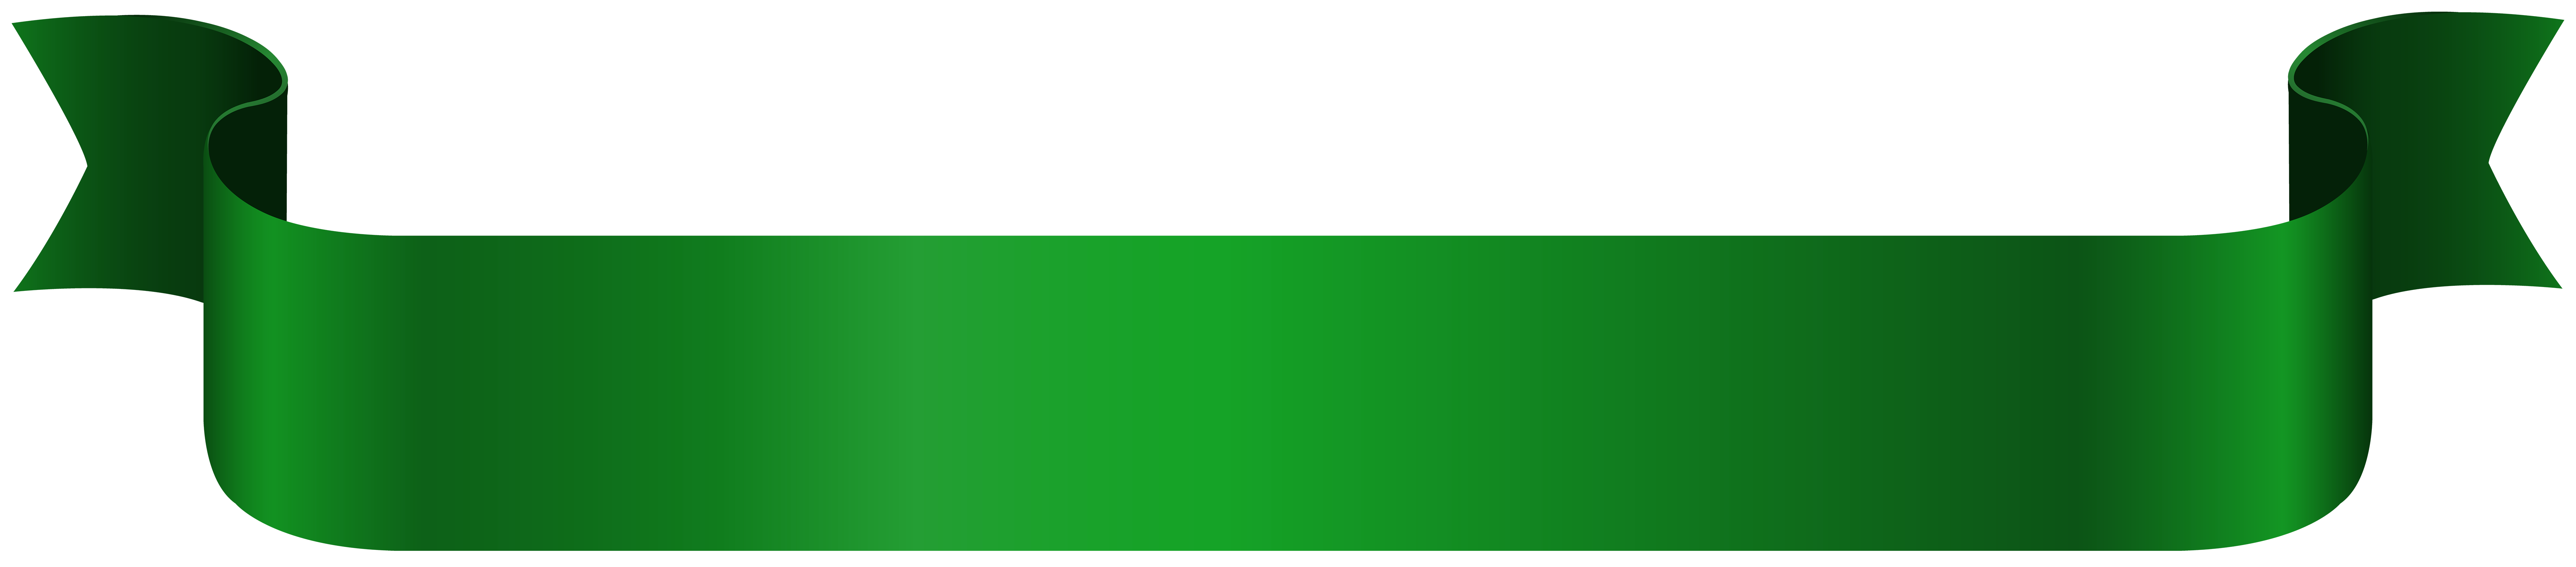 Green clipart banner. Png clip art image